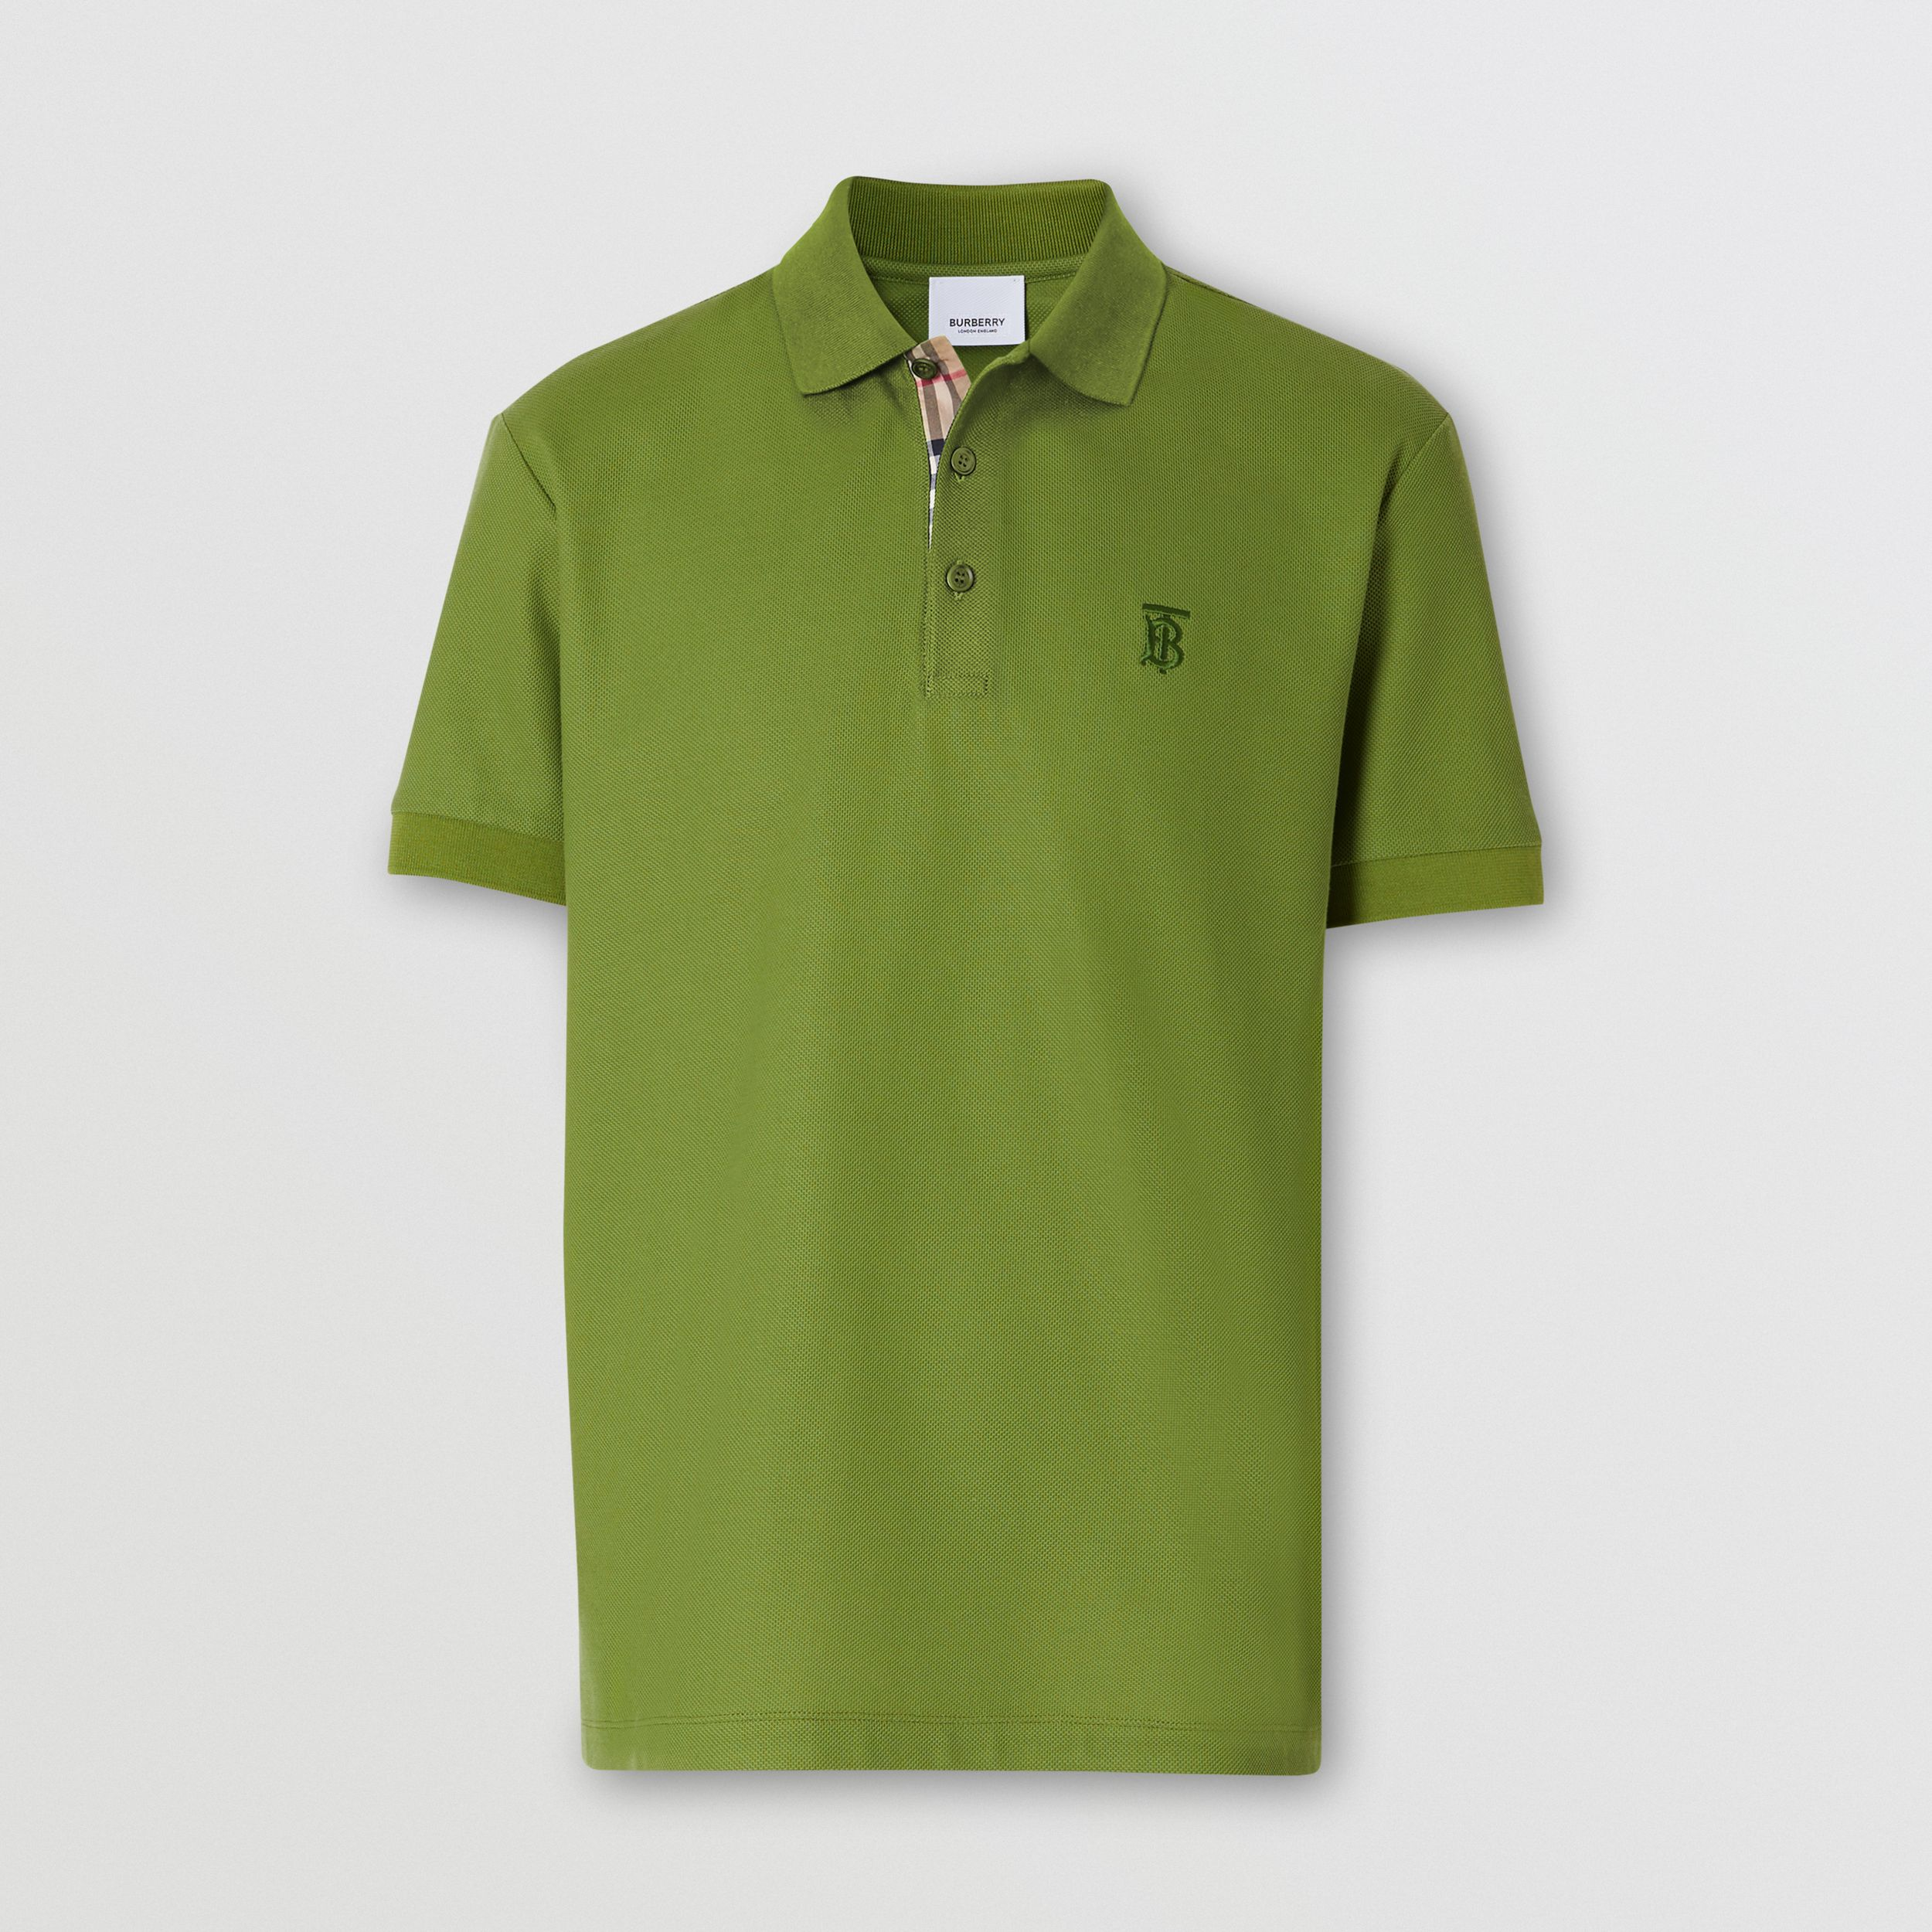 Monogram Motif Cotton Piqué Polo Shirt in Cedar Green - Men | Burberry - 4